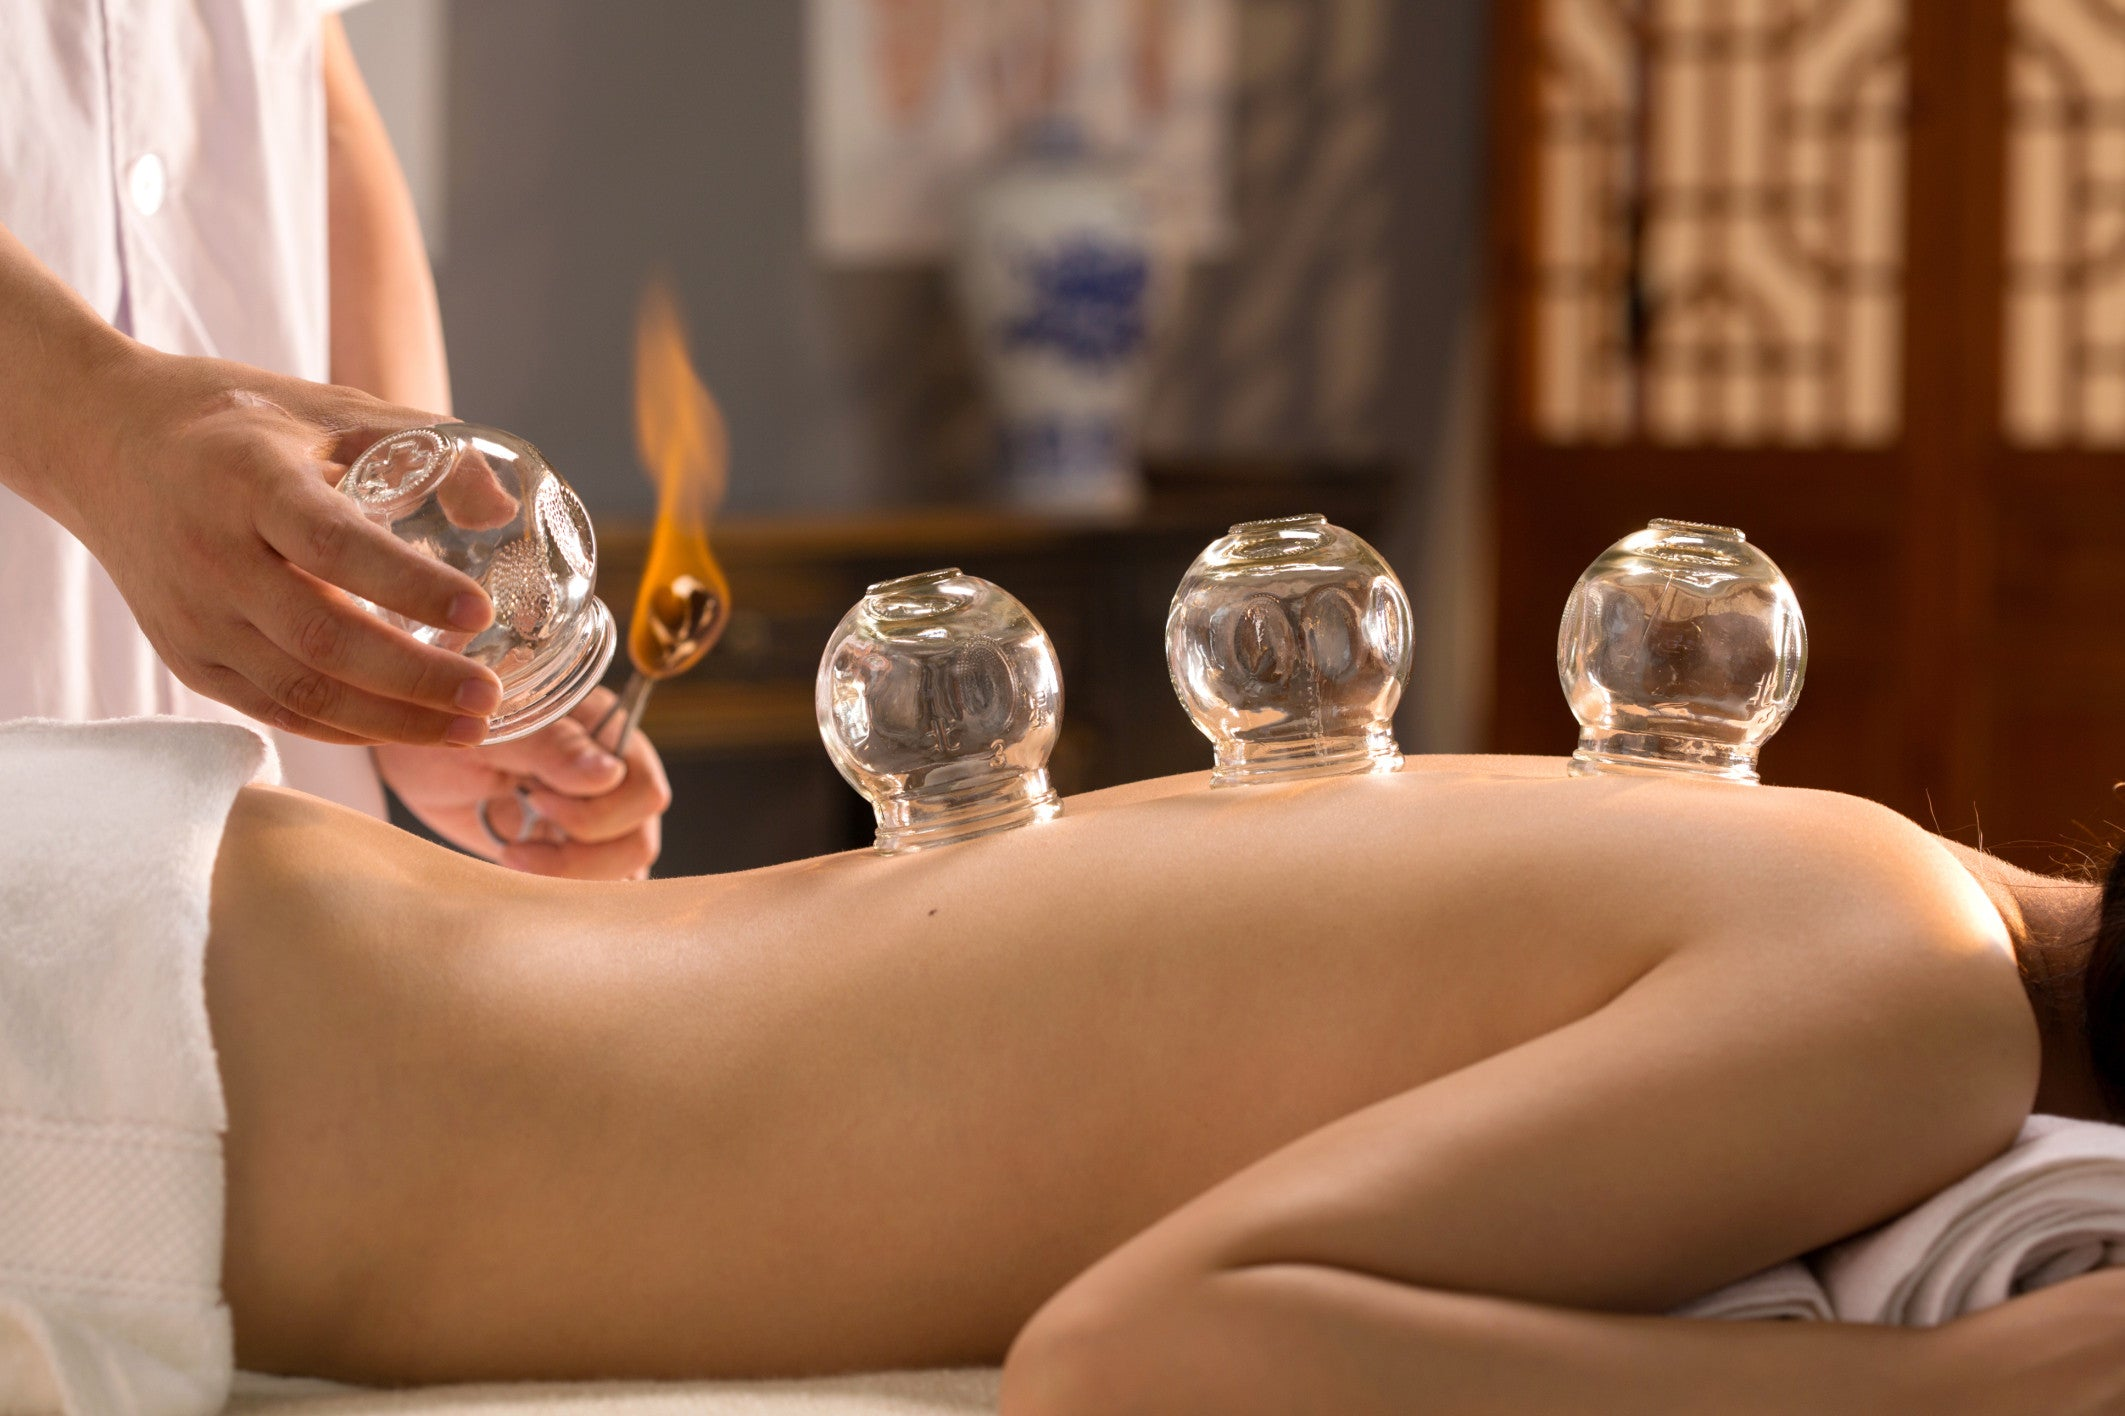 What Does Cupping Therapy Do?